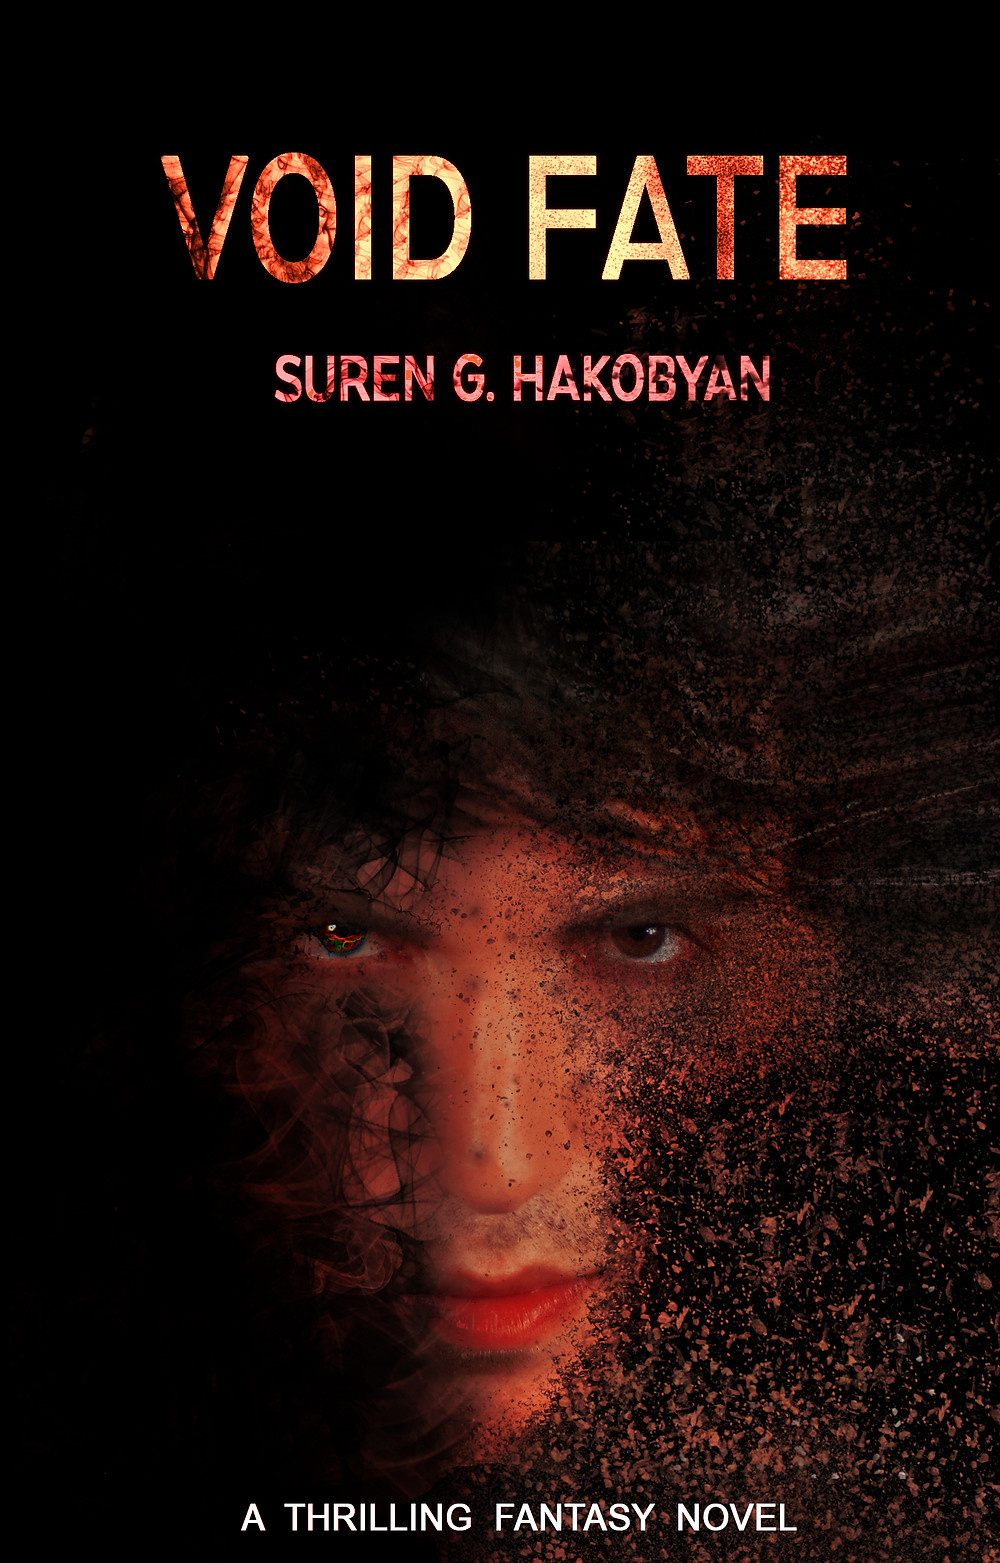 Book Review of Void Fate by Suren G. Hakobyan